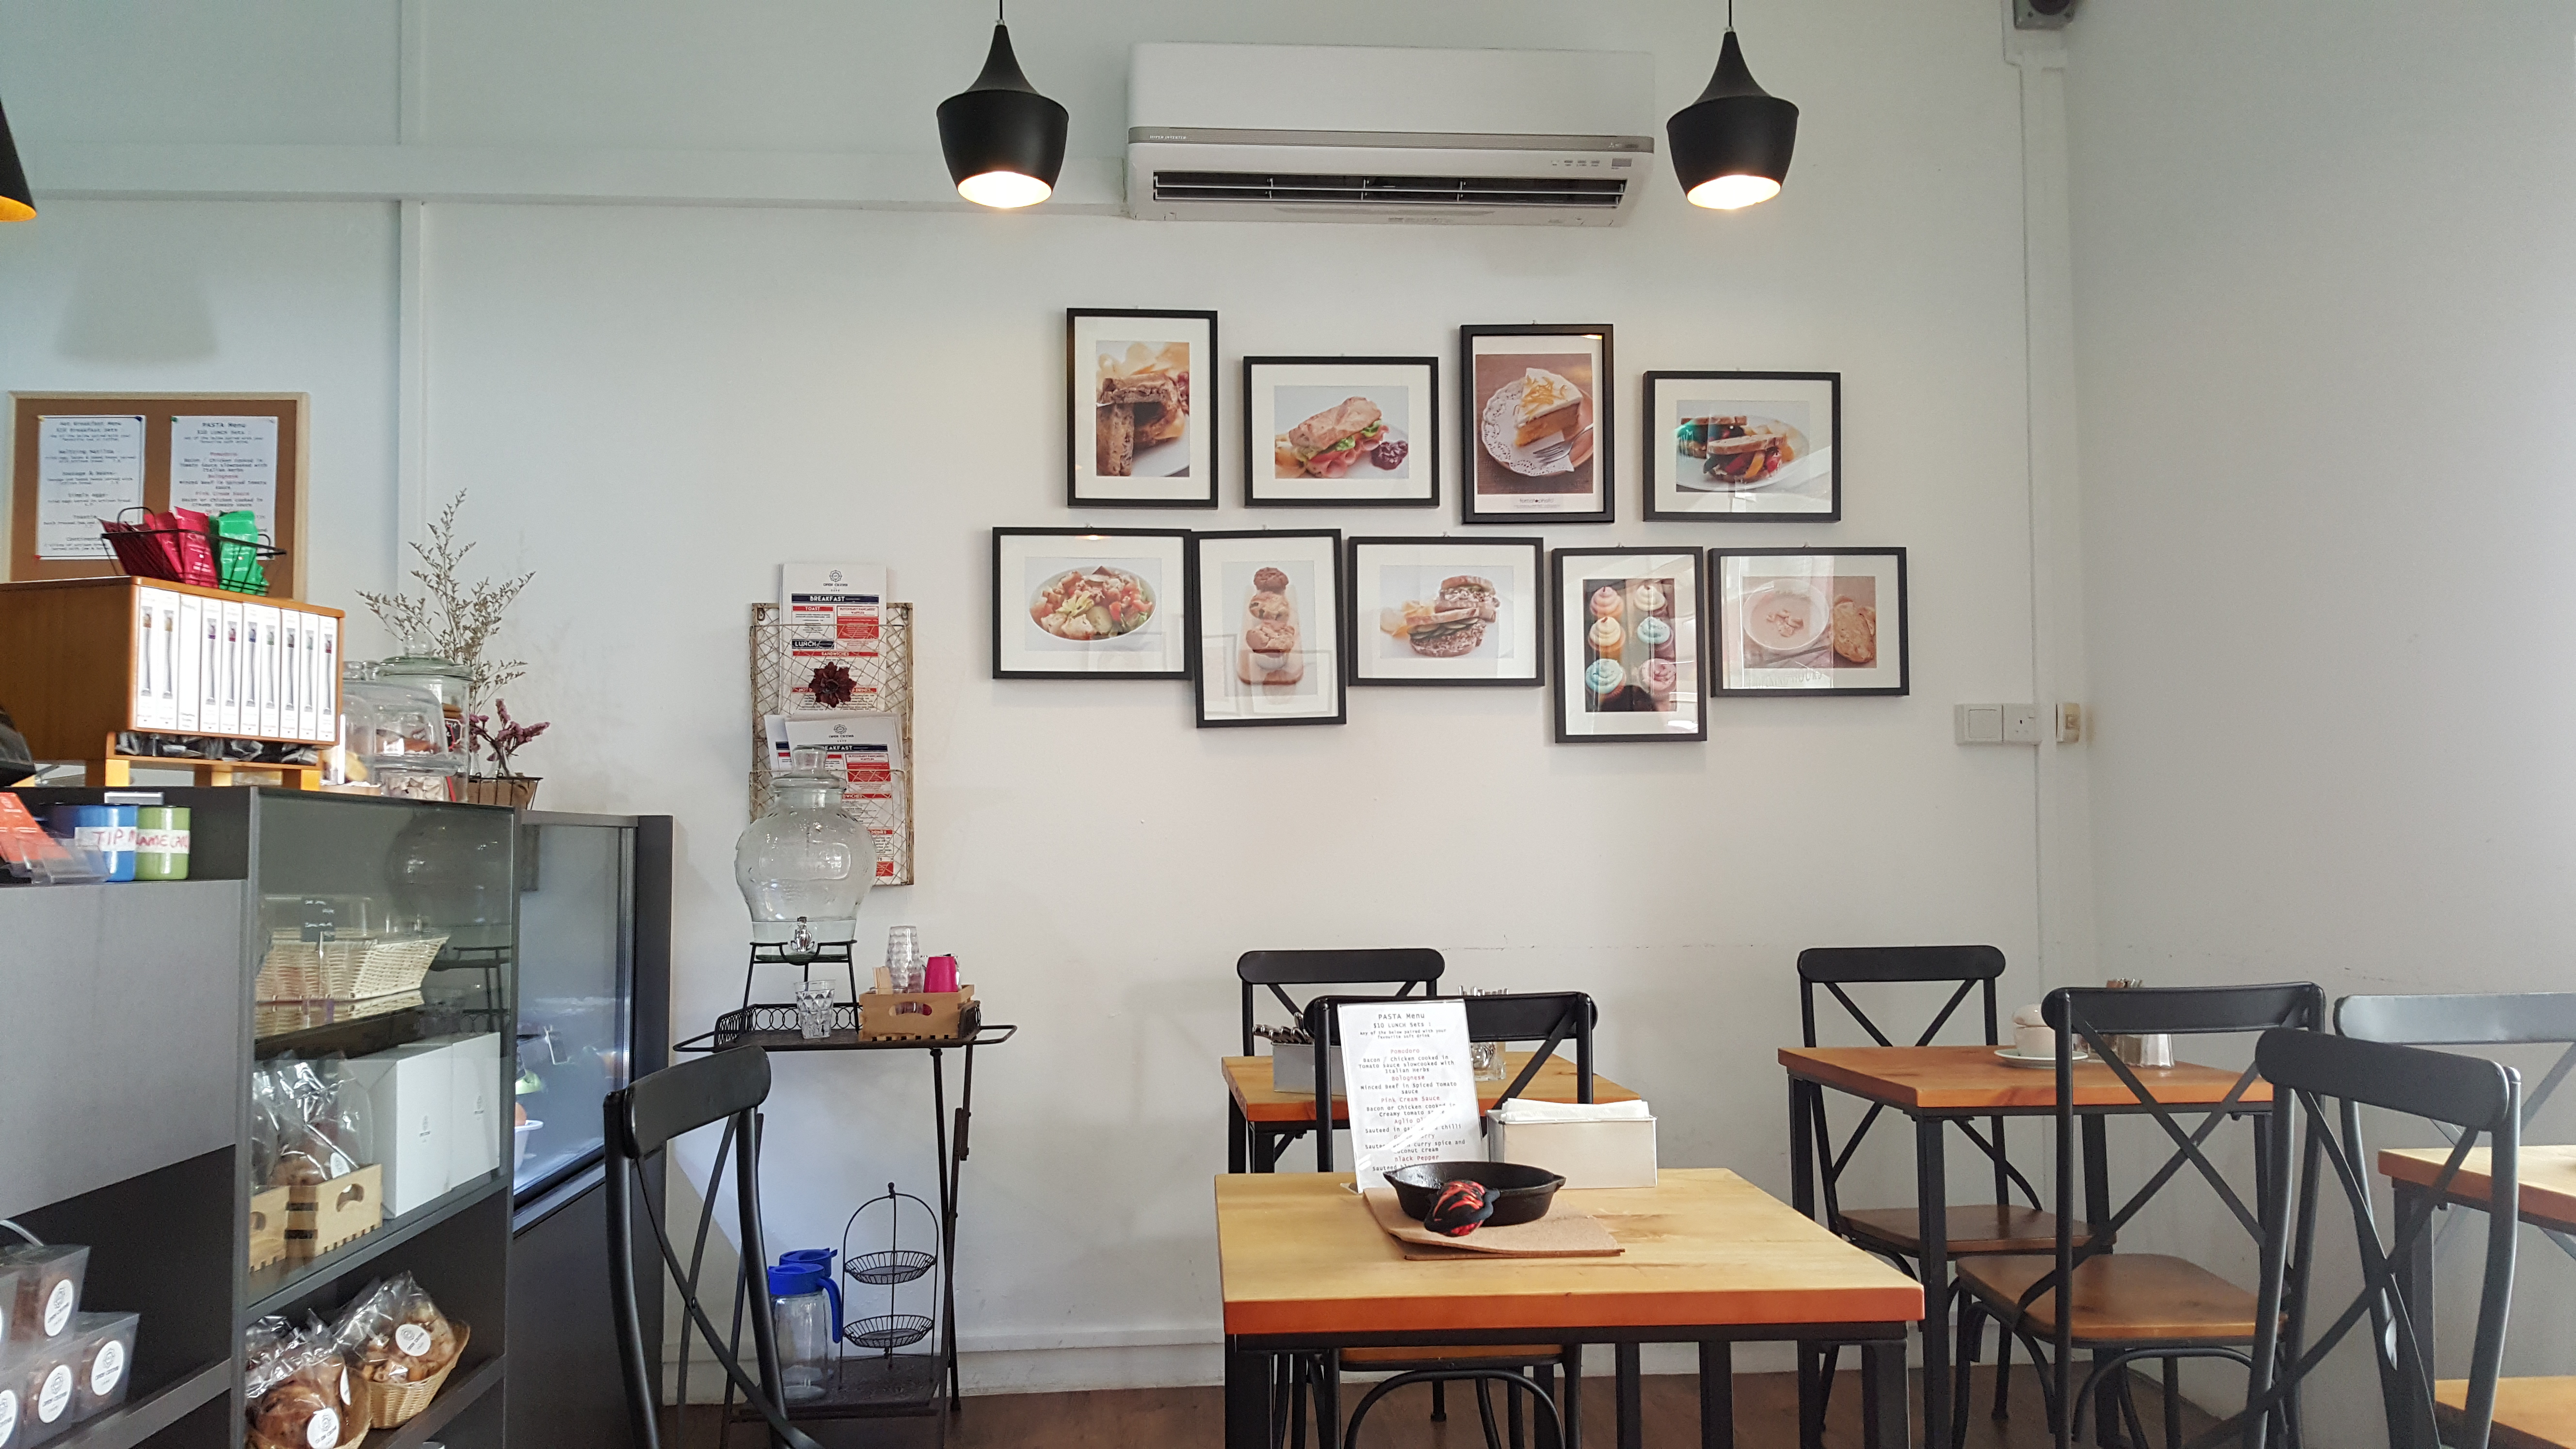 Open Crumb Cafe